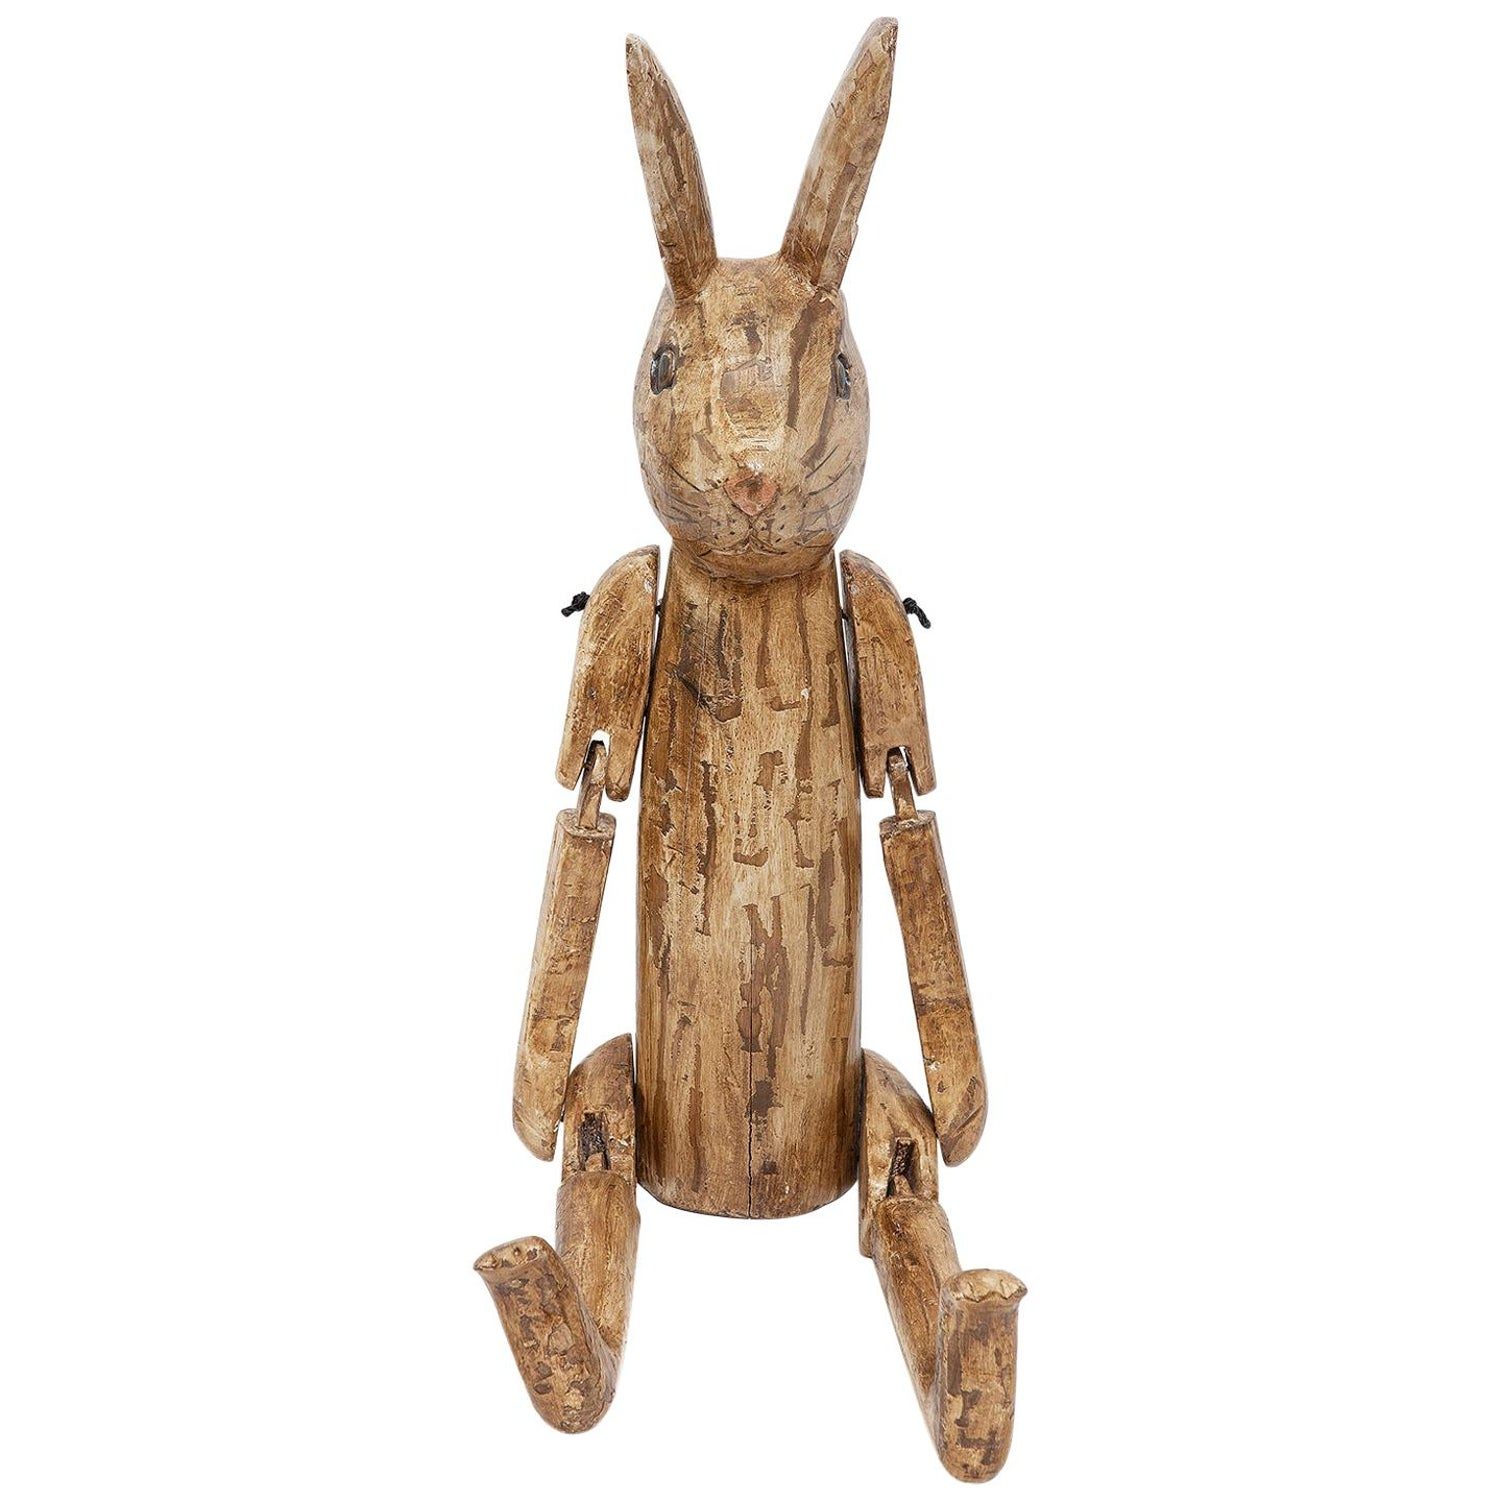 Sculpture Naive Carved Articulated Rabbit Model Artist Sculptor Height Folk